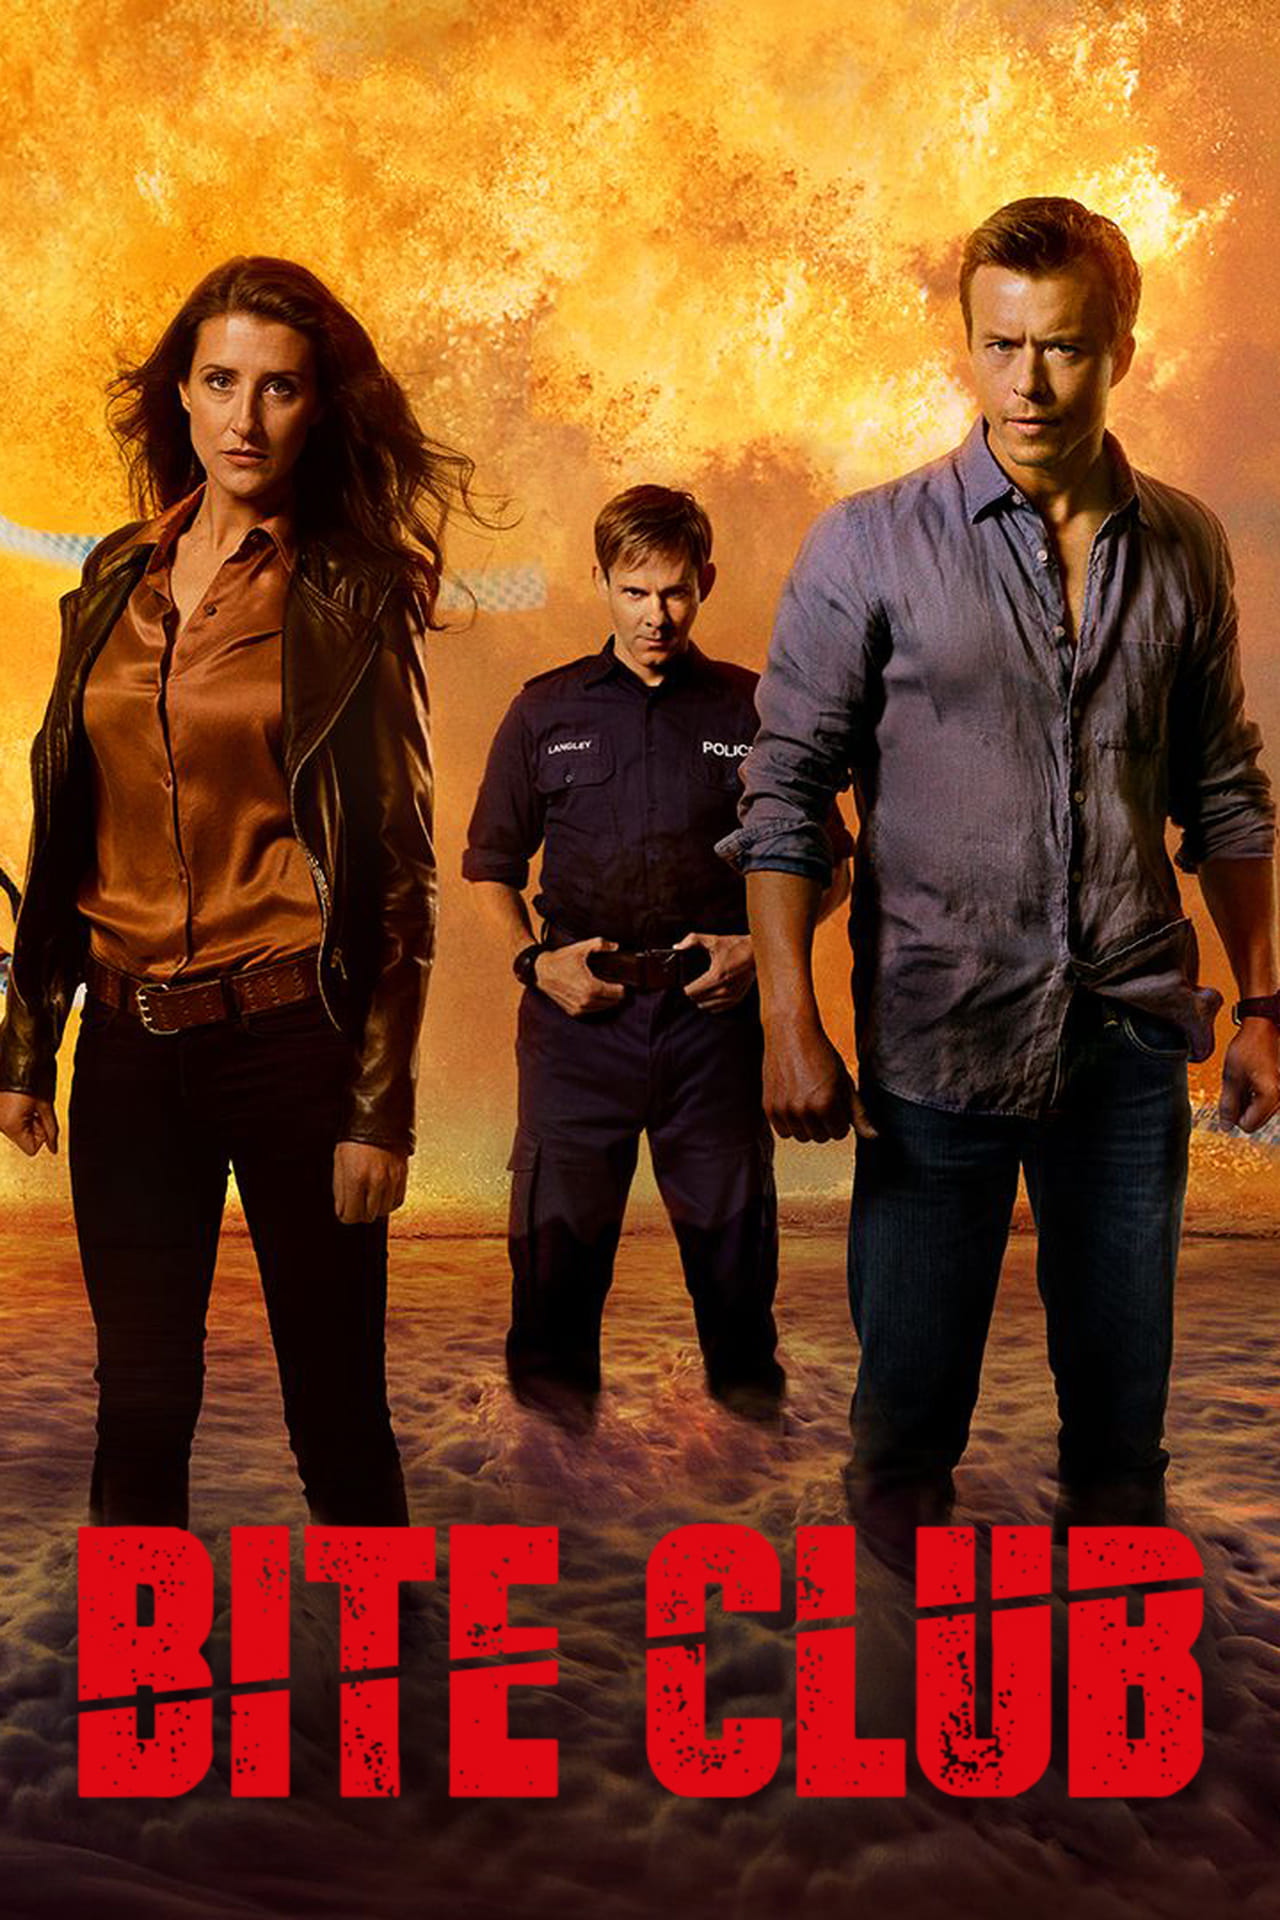 Putlocker Bite Club Season 1 (2018)